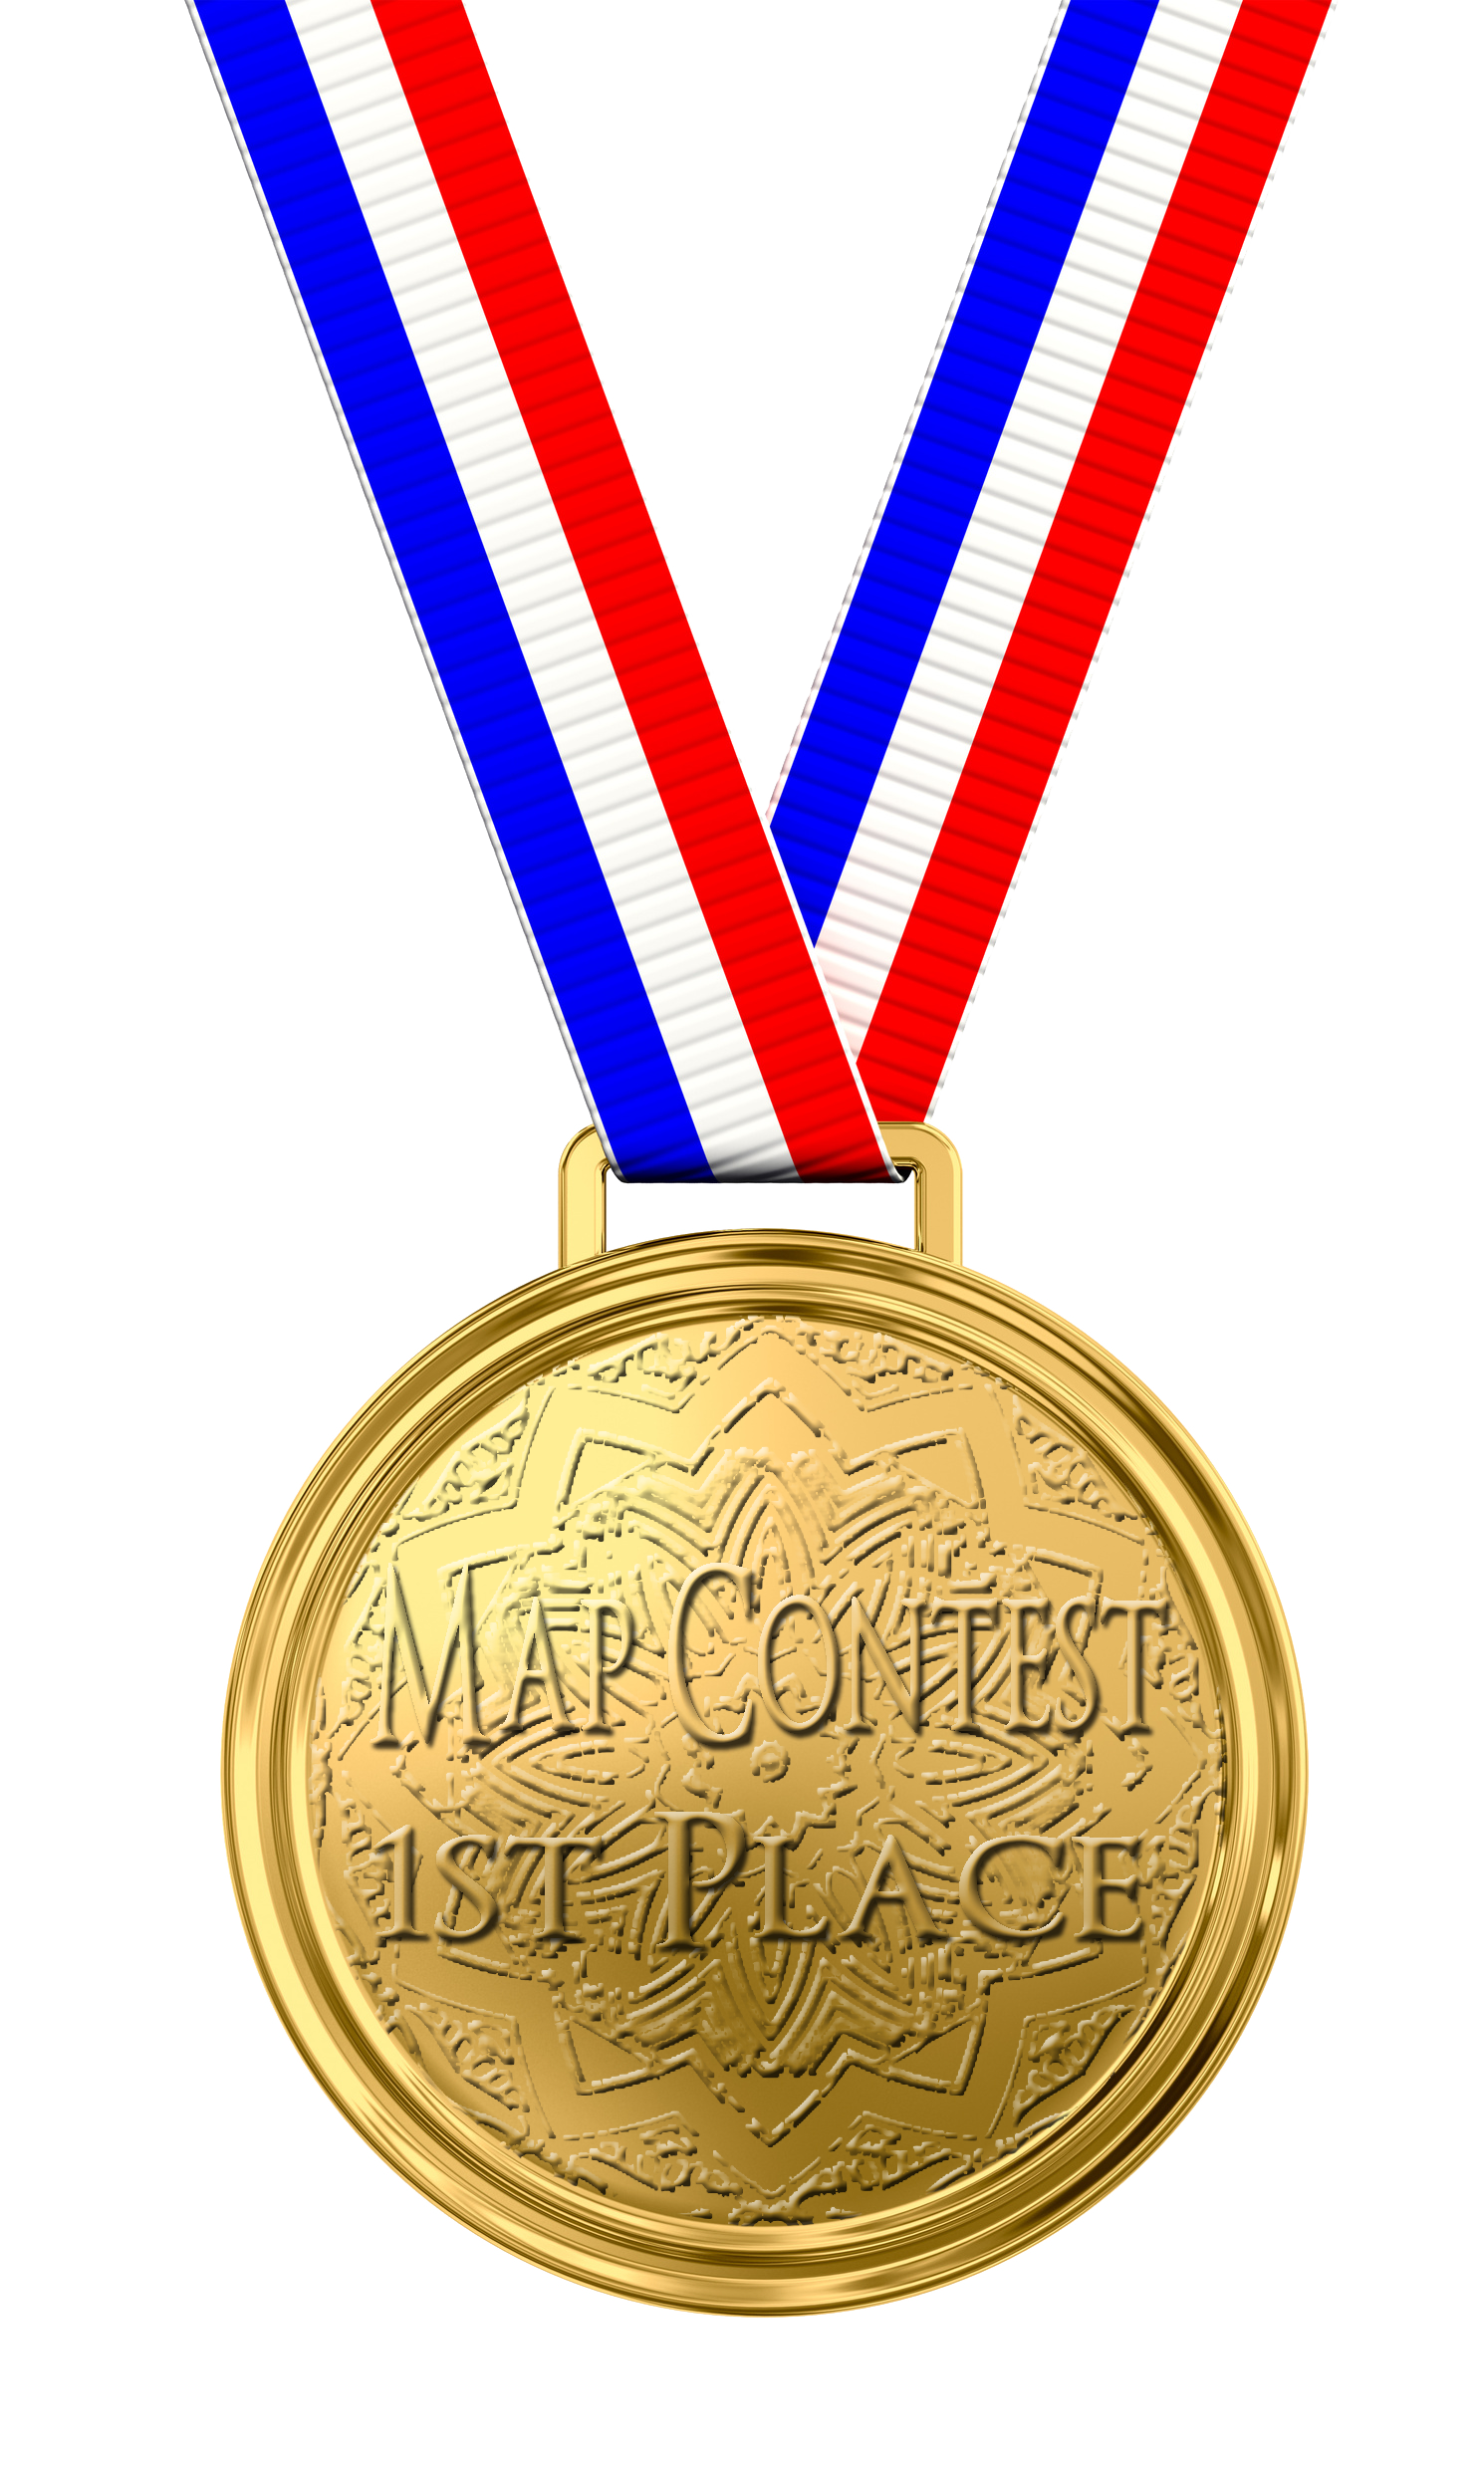 1st Place Medal PNG Image.